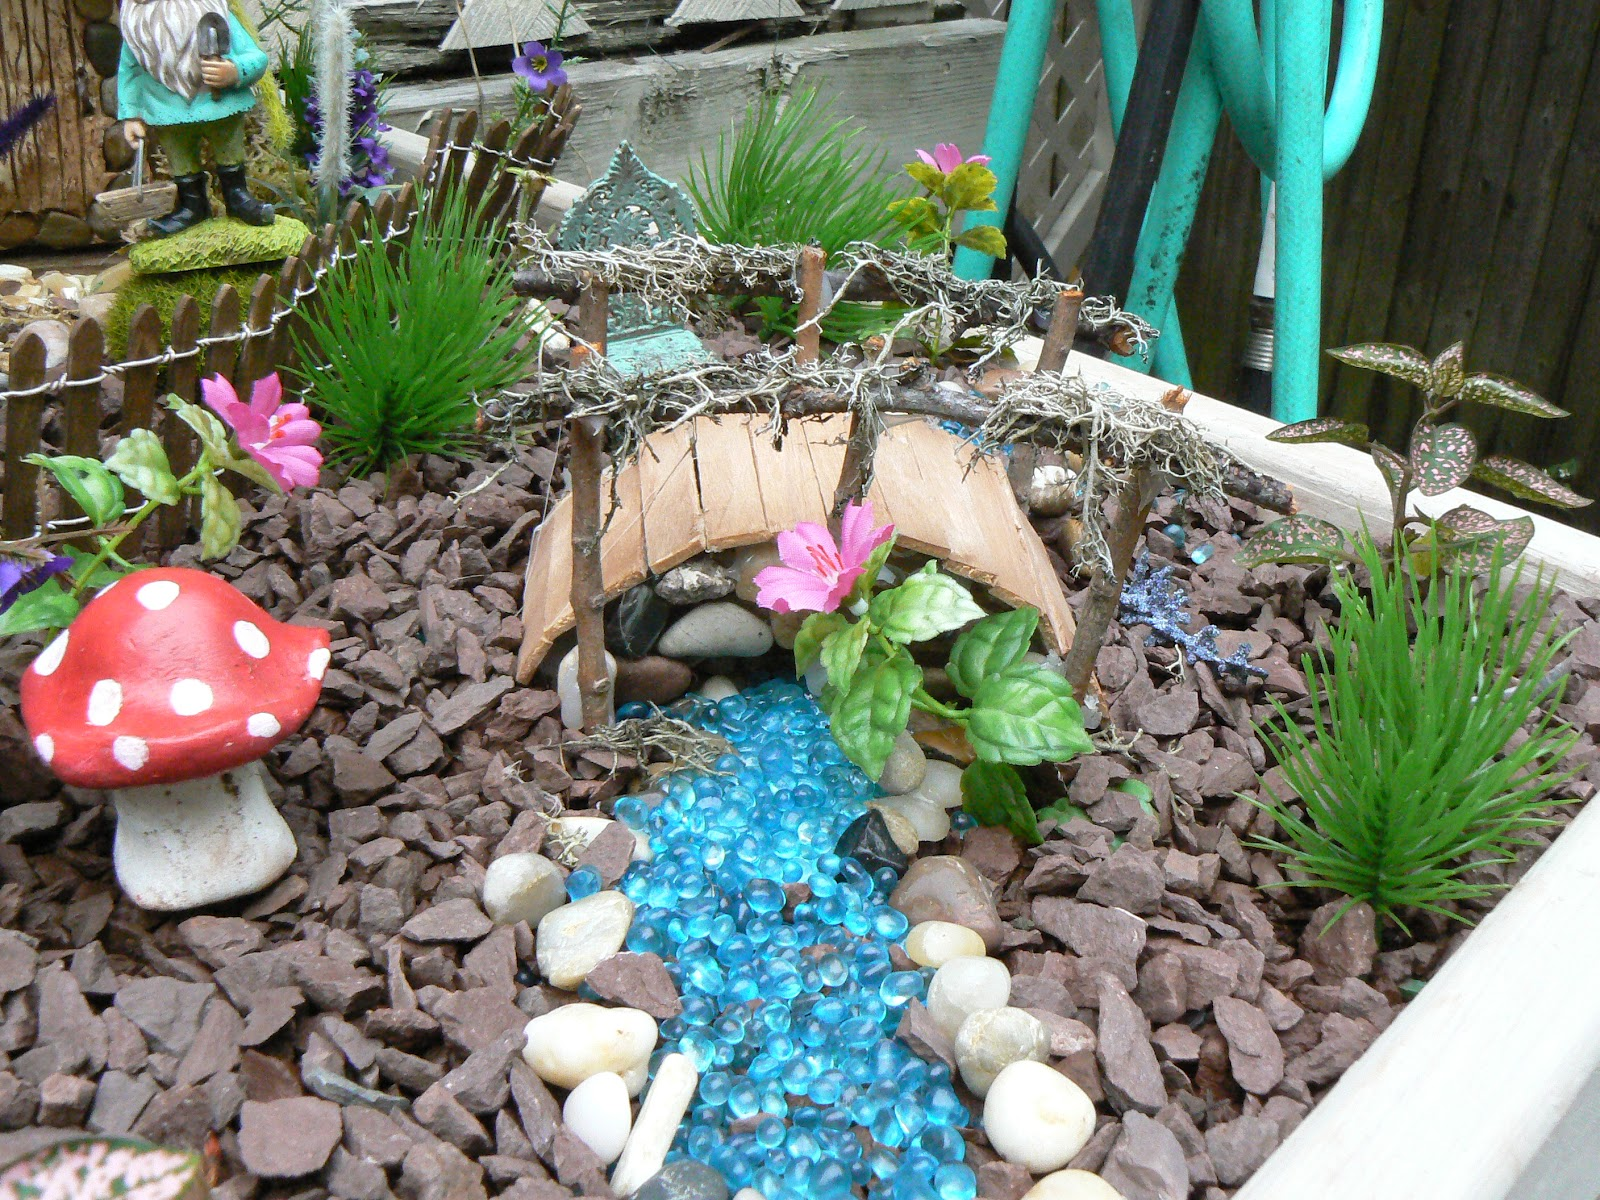 Lovely Fairy Garden With My Daughter Marissa. It Has Become Our Favorite New Hobby  And We Had A Lot Of Fun Creating It. I Hope That You Enjoy Your Visit.